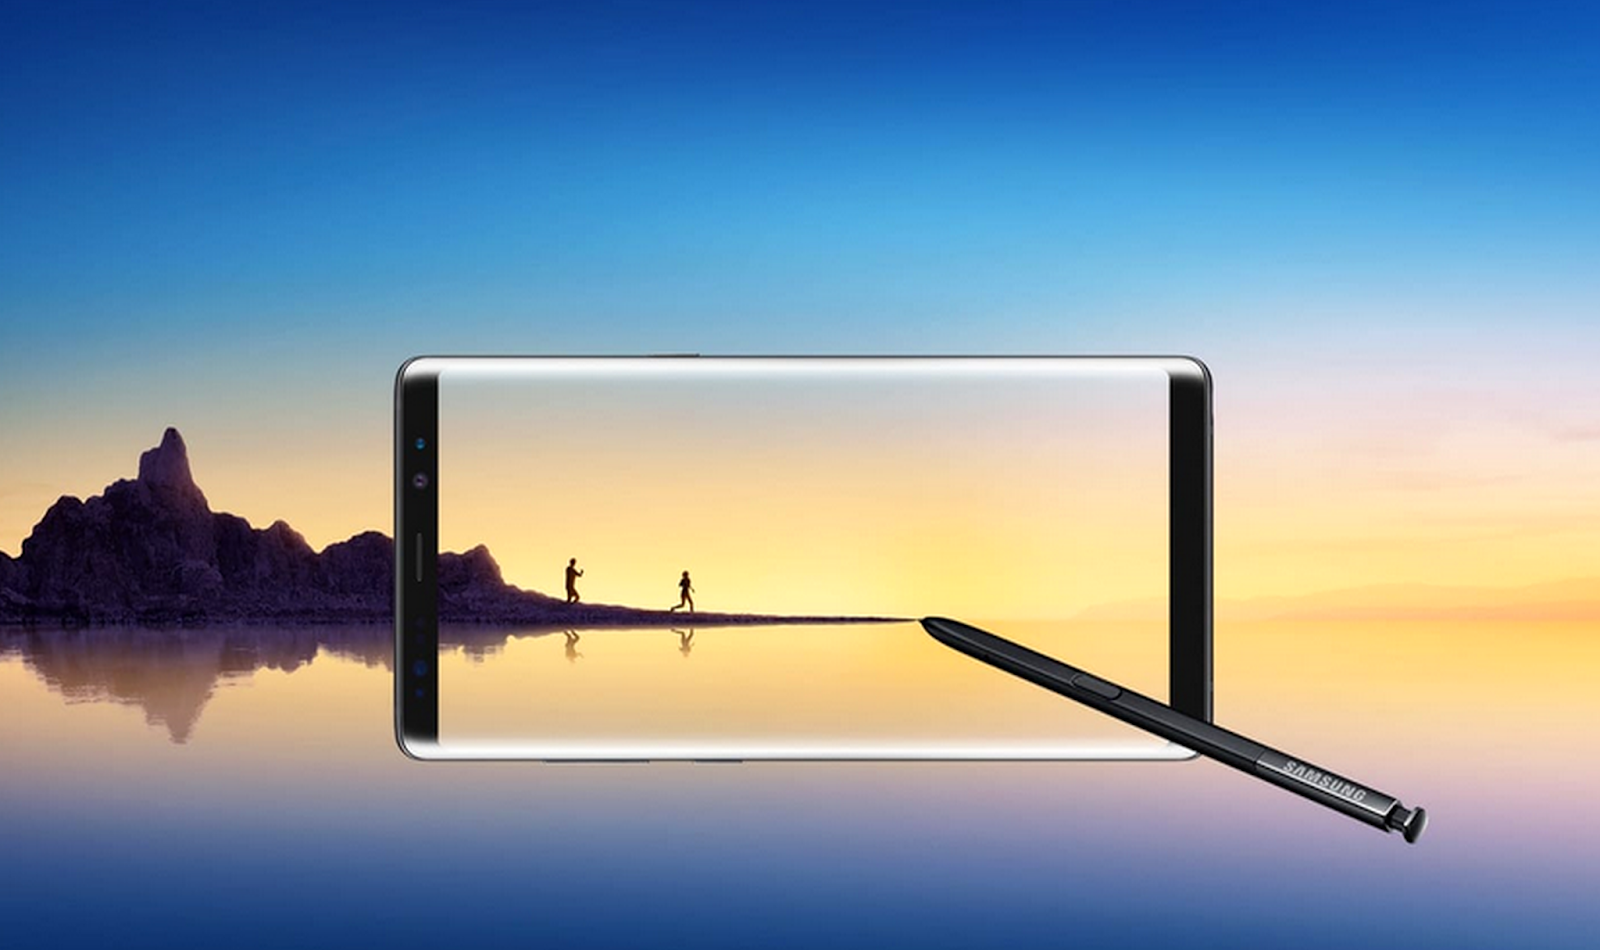 Samsung Galaxy Note 9 Hd Wallpapers